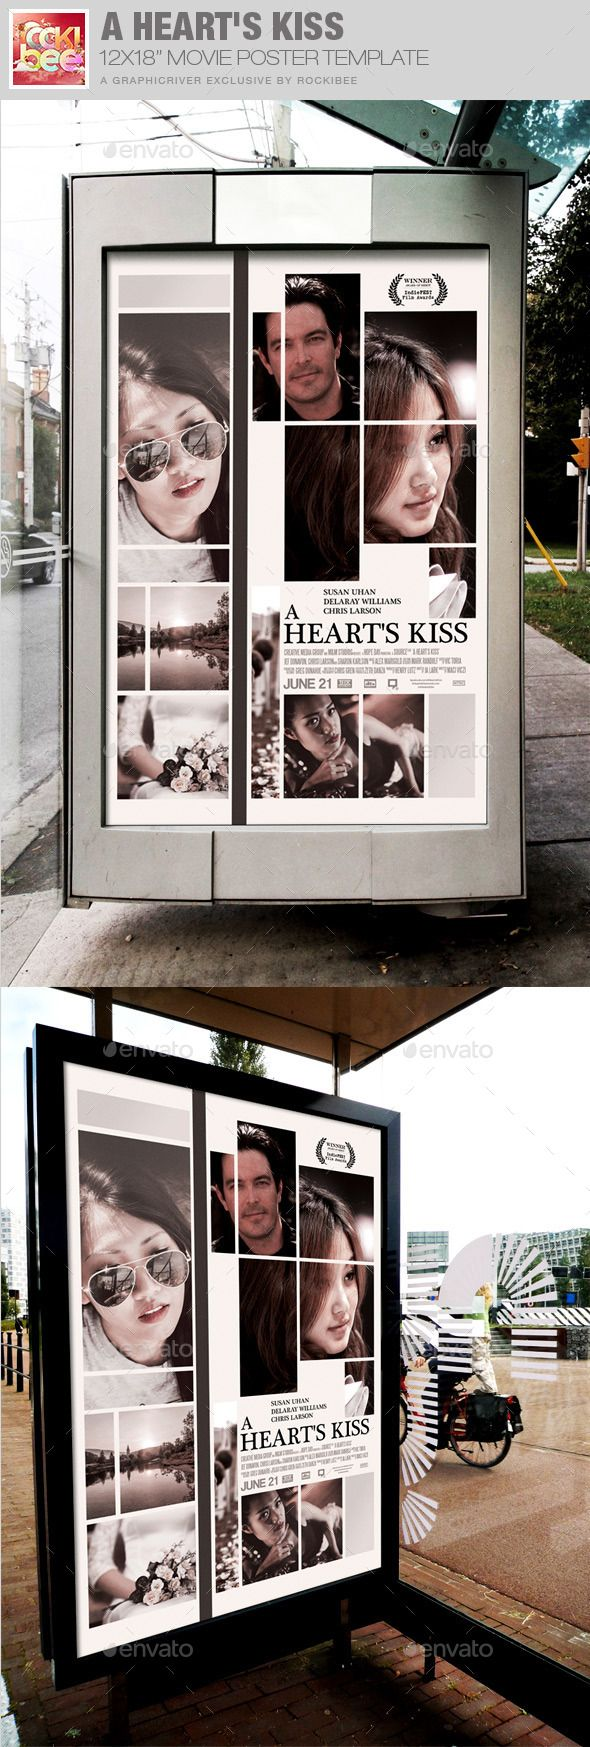 A Heart's Kiss Movie Poster Template — Photoshop PSD #media #cinema • Available here → https://graphicriver.net/item/a-hearts-kiss-movie-poster-template/12028060?ref=pxcr